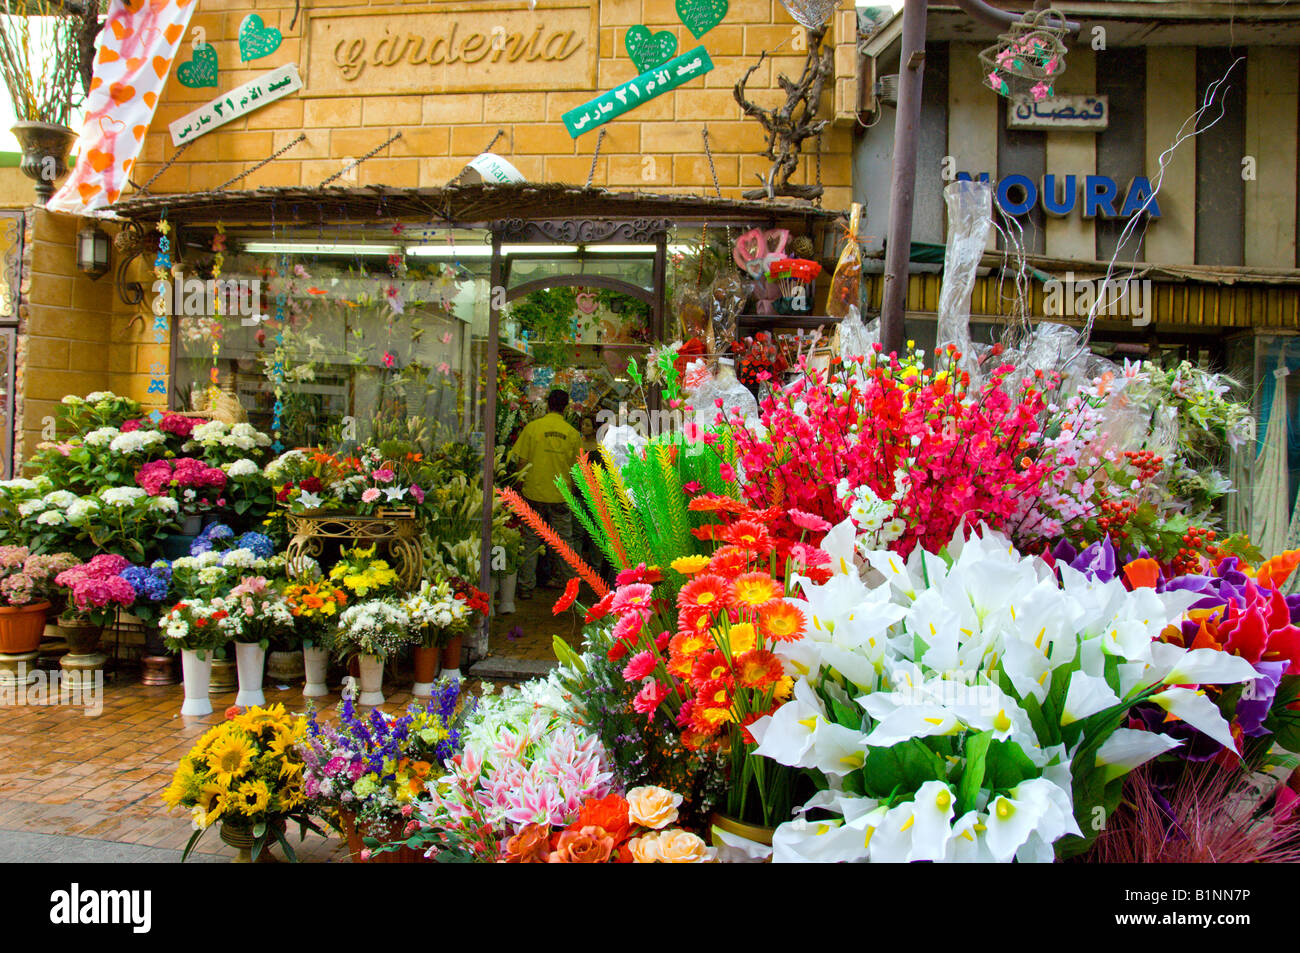 The Gardenia Flower Shop Displays Colorful Flowers